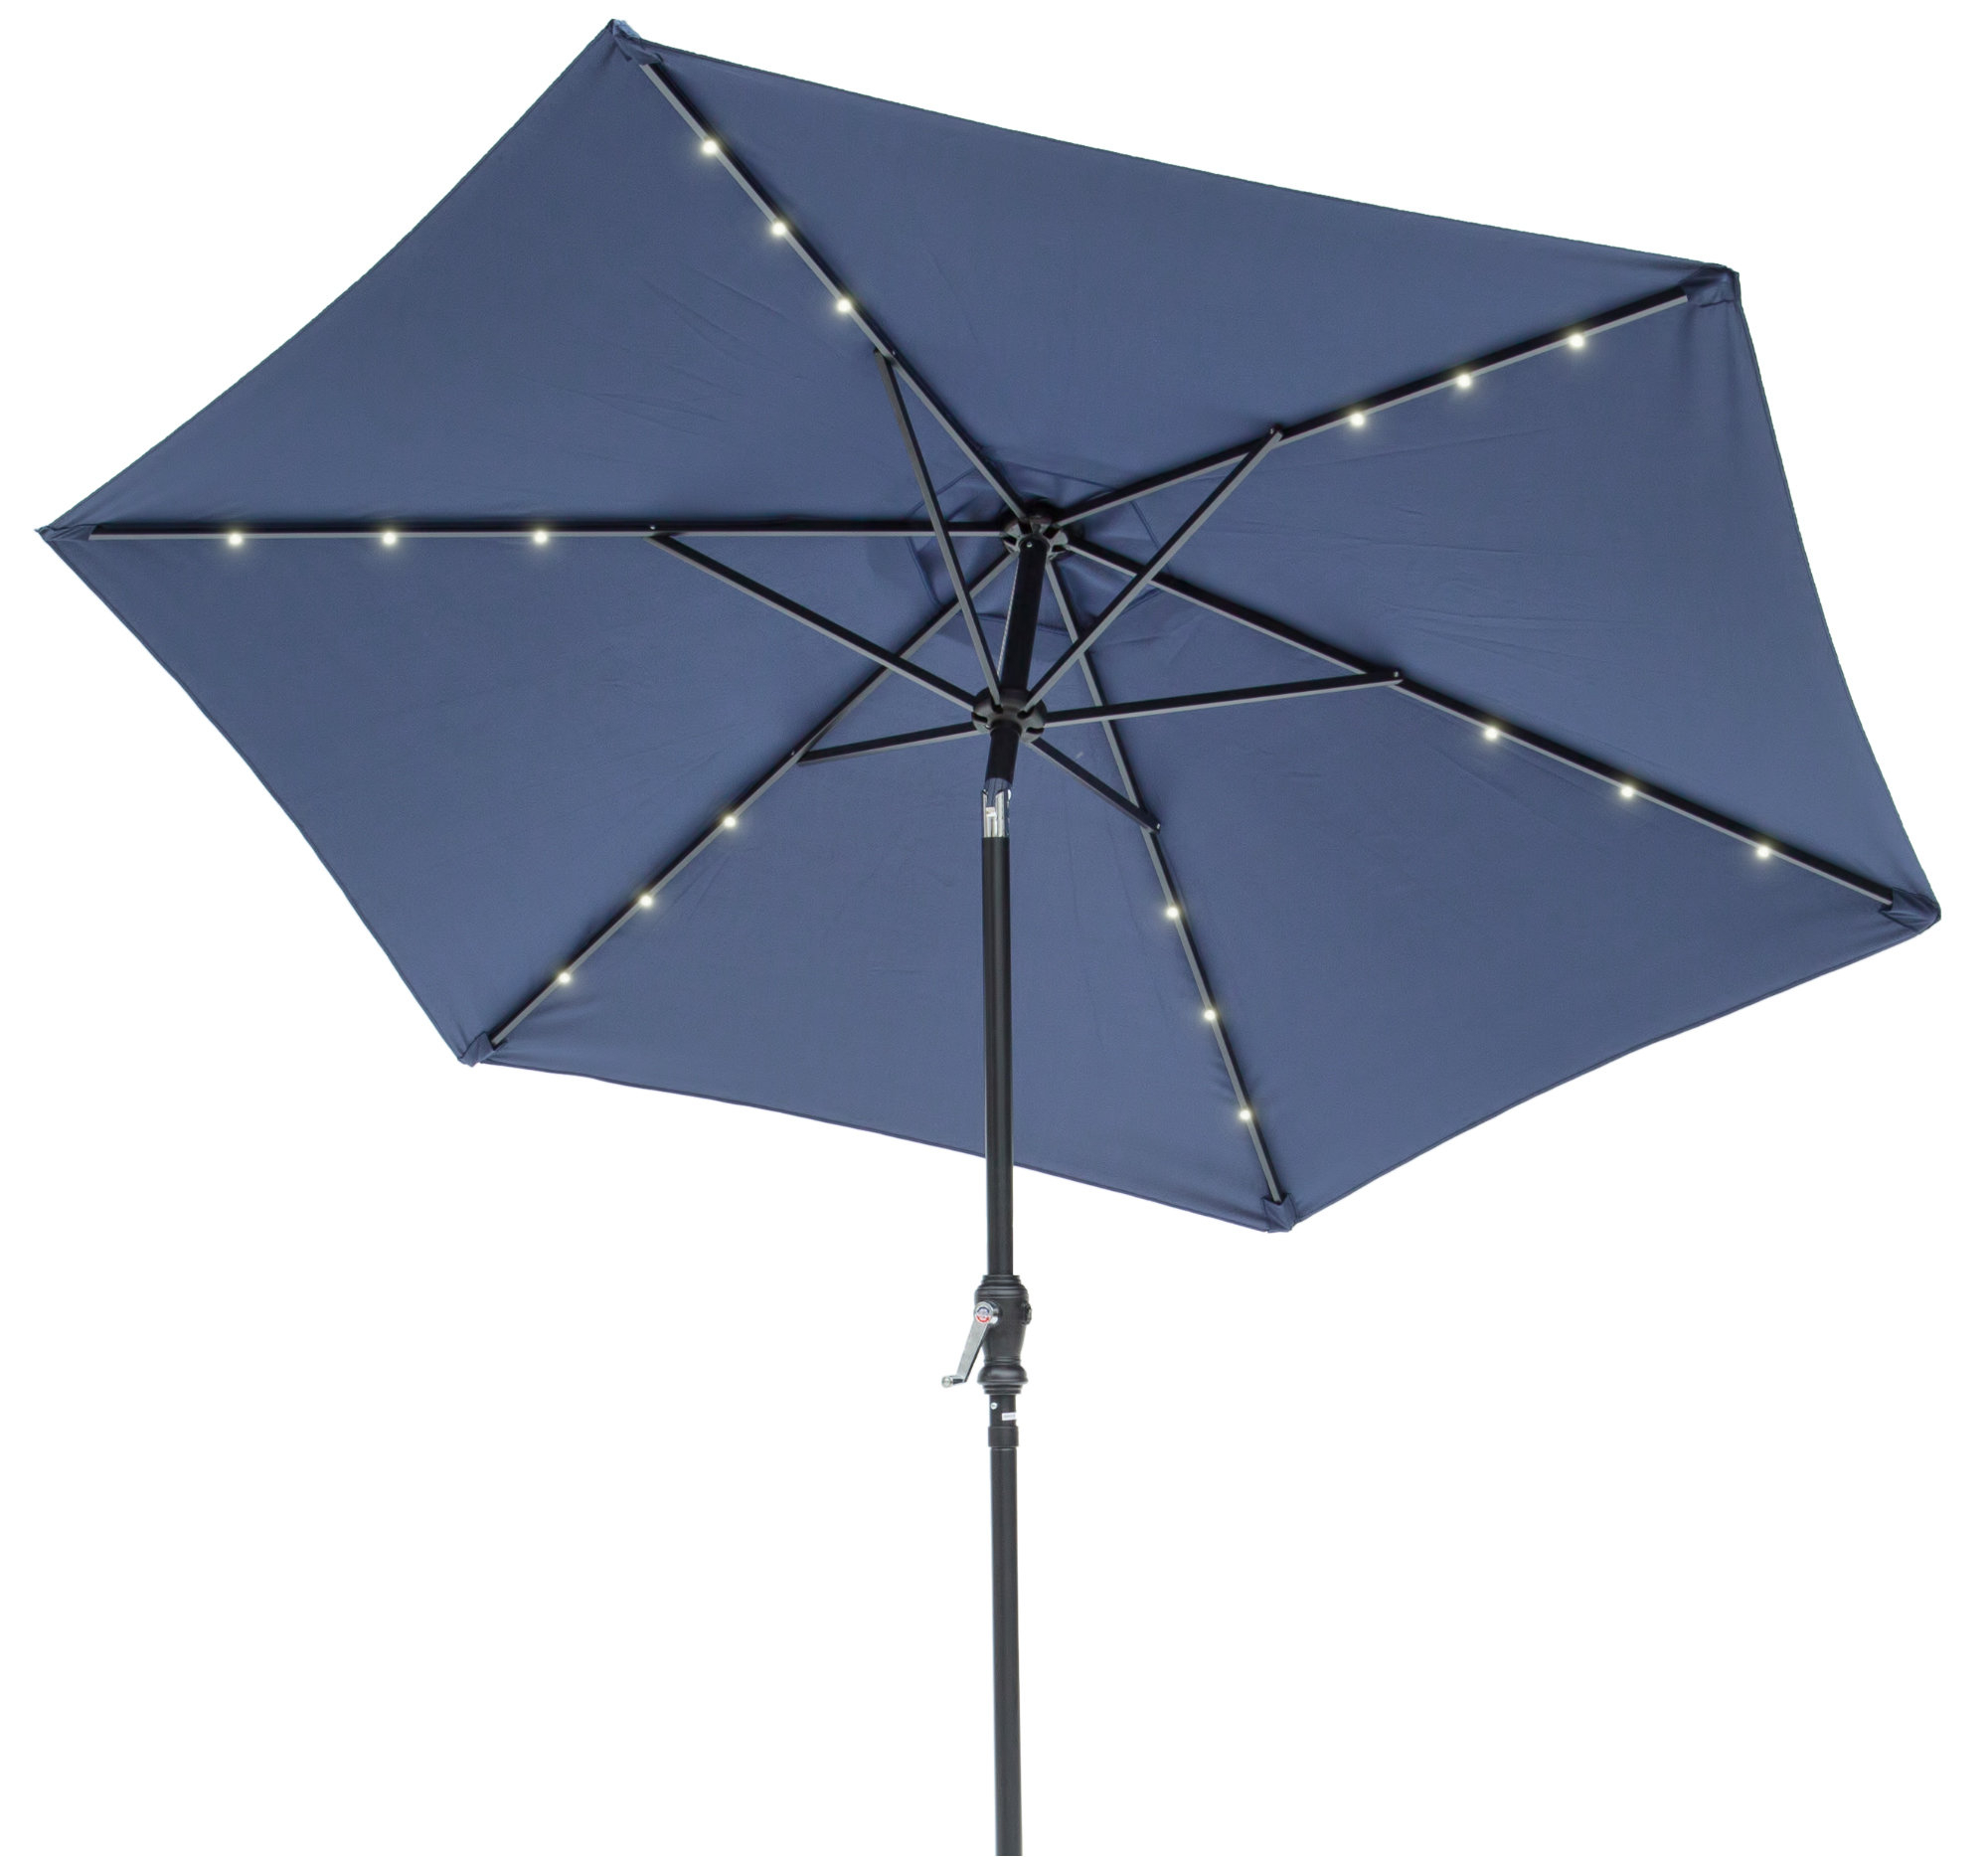 Herlinda Solar Lighted 9' Market Umbrella Intended For Trendy Hawkinge Market Umbrellas (View 8 of 20)